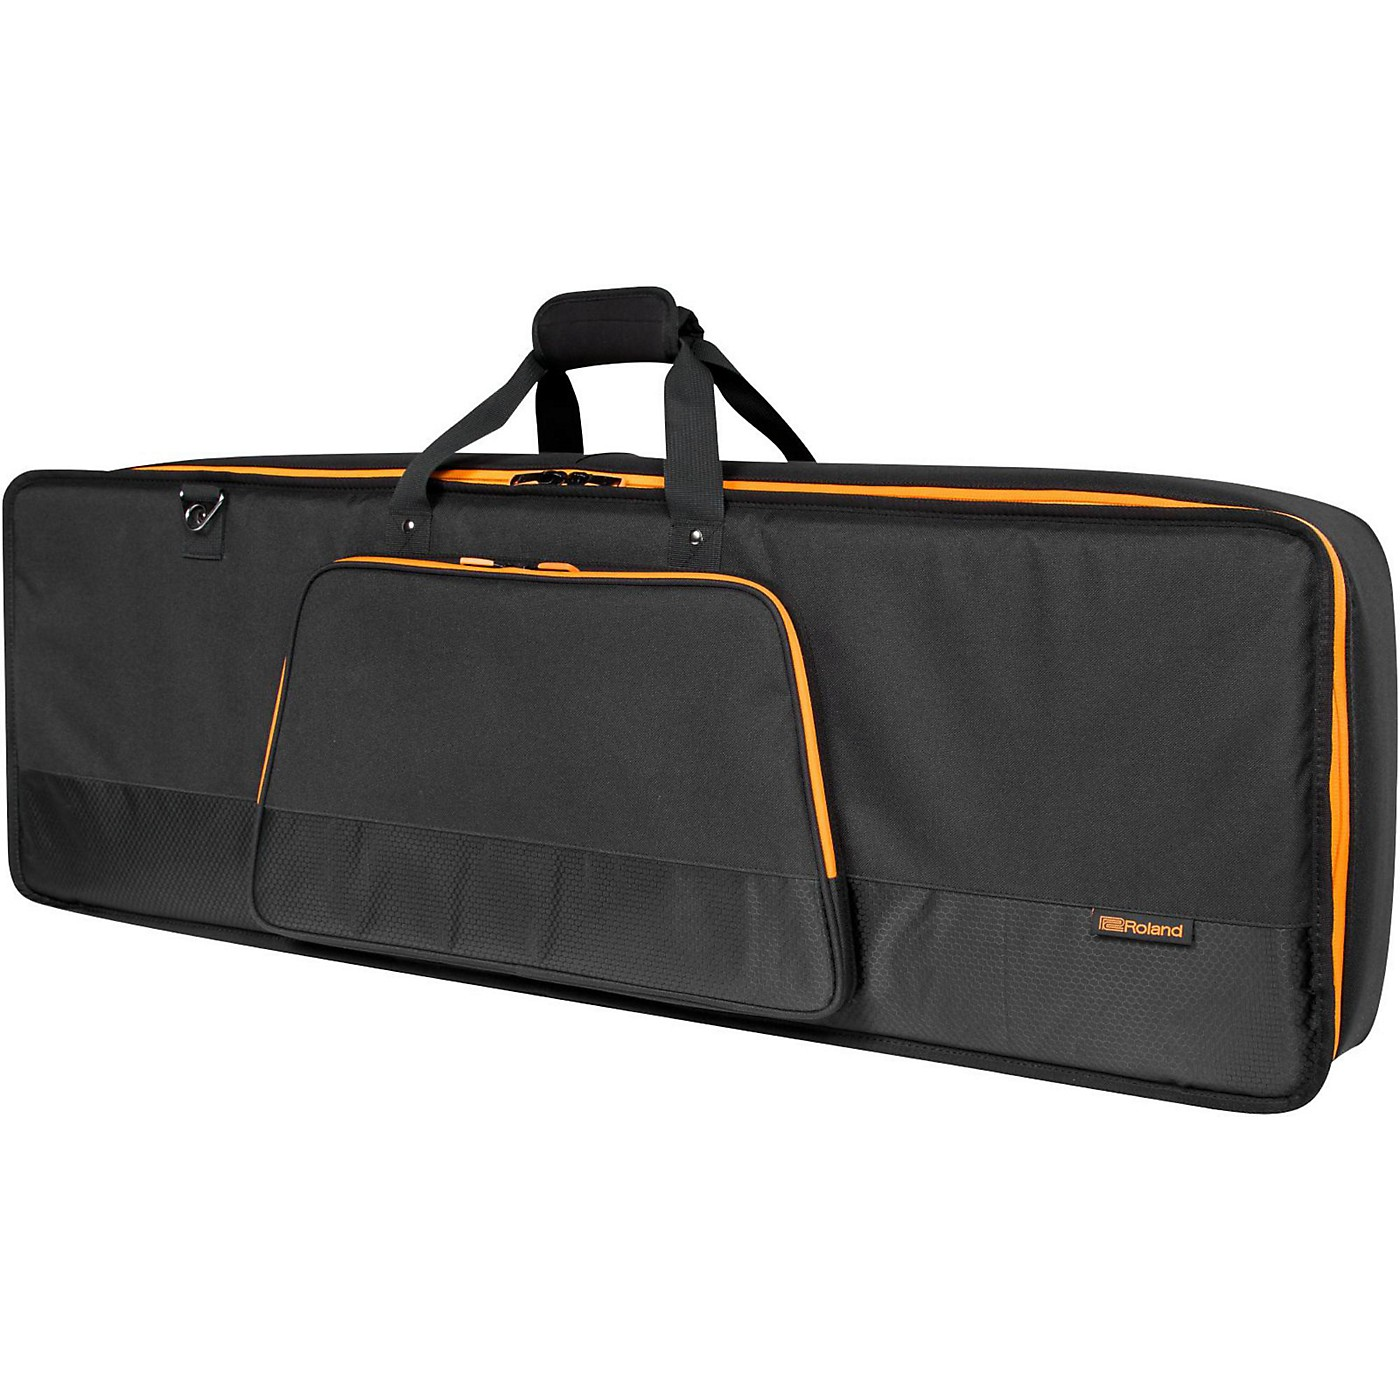 Roland Gold Series Keyboard Bag with Backpack and Shoulder Straps thumbnail